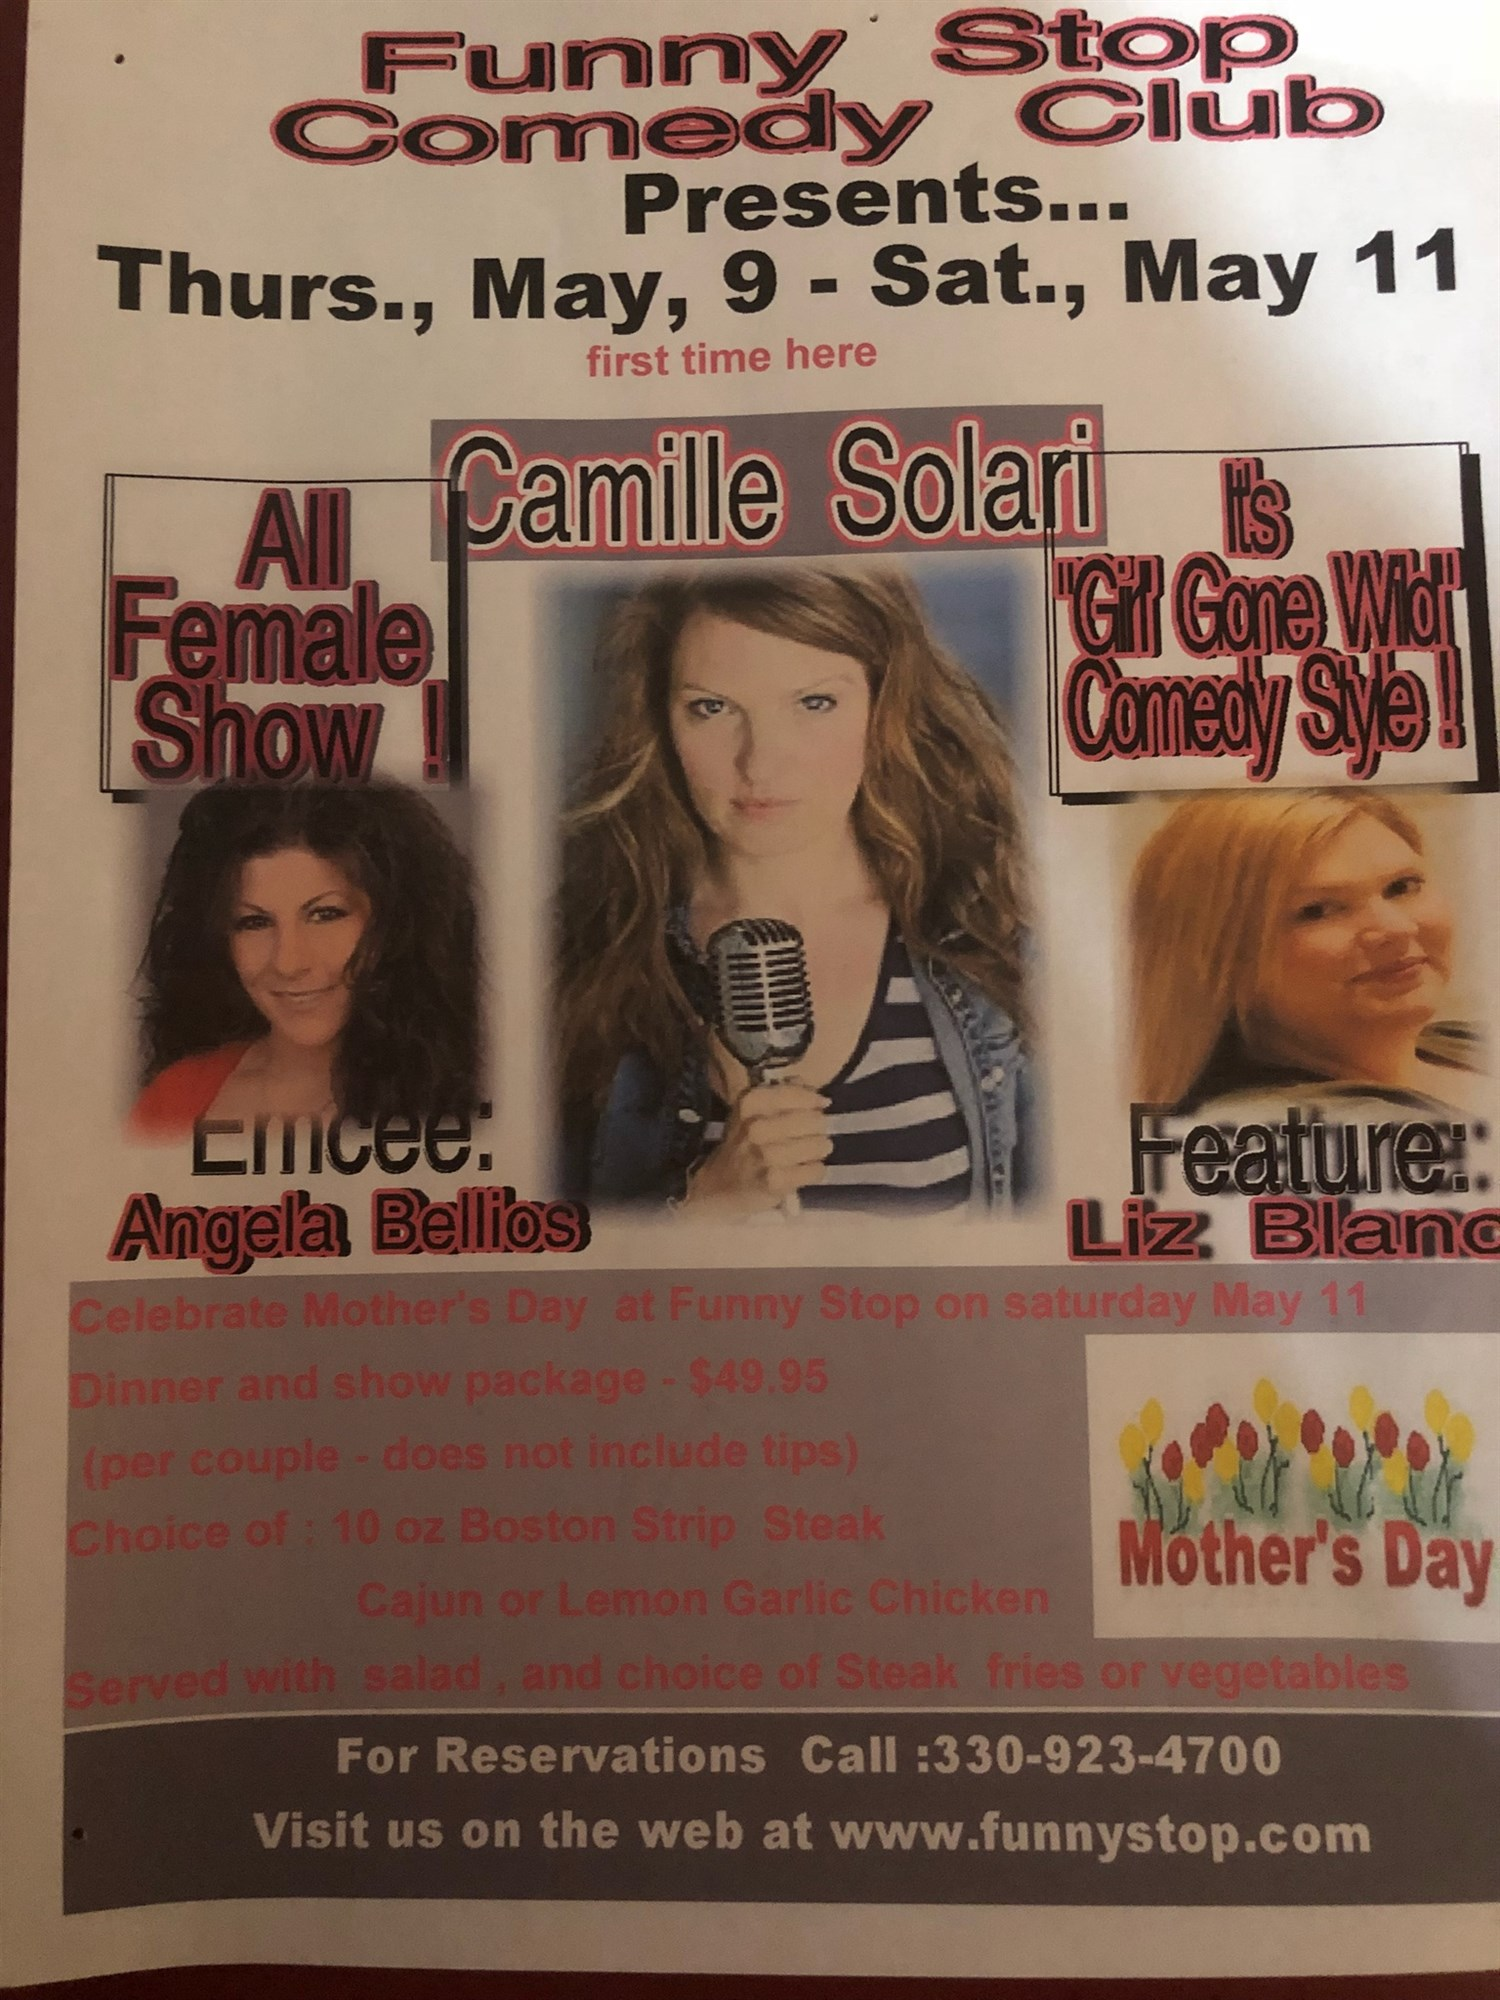 Camiile Solari / Liz Blanc 9:30 Show Mother's Day All Women Line Up on May 11, 21:30@Funny Stop Comedy Club - Buy tickets and Get information on Funny Stop funnystop.online